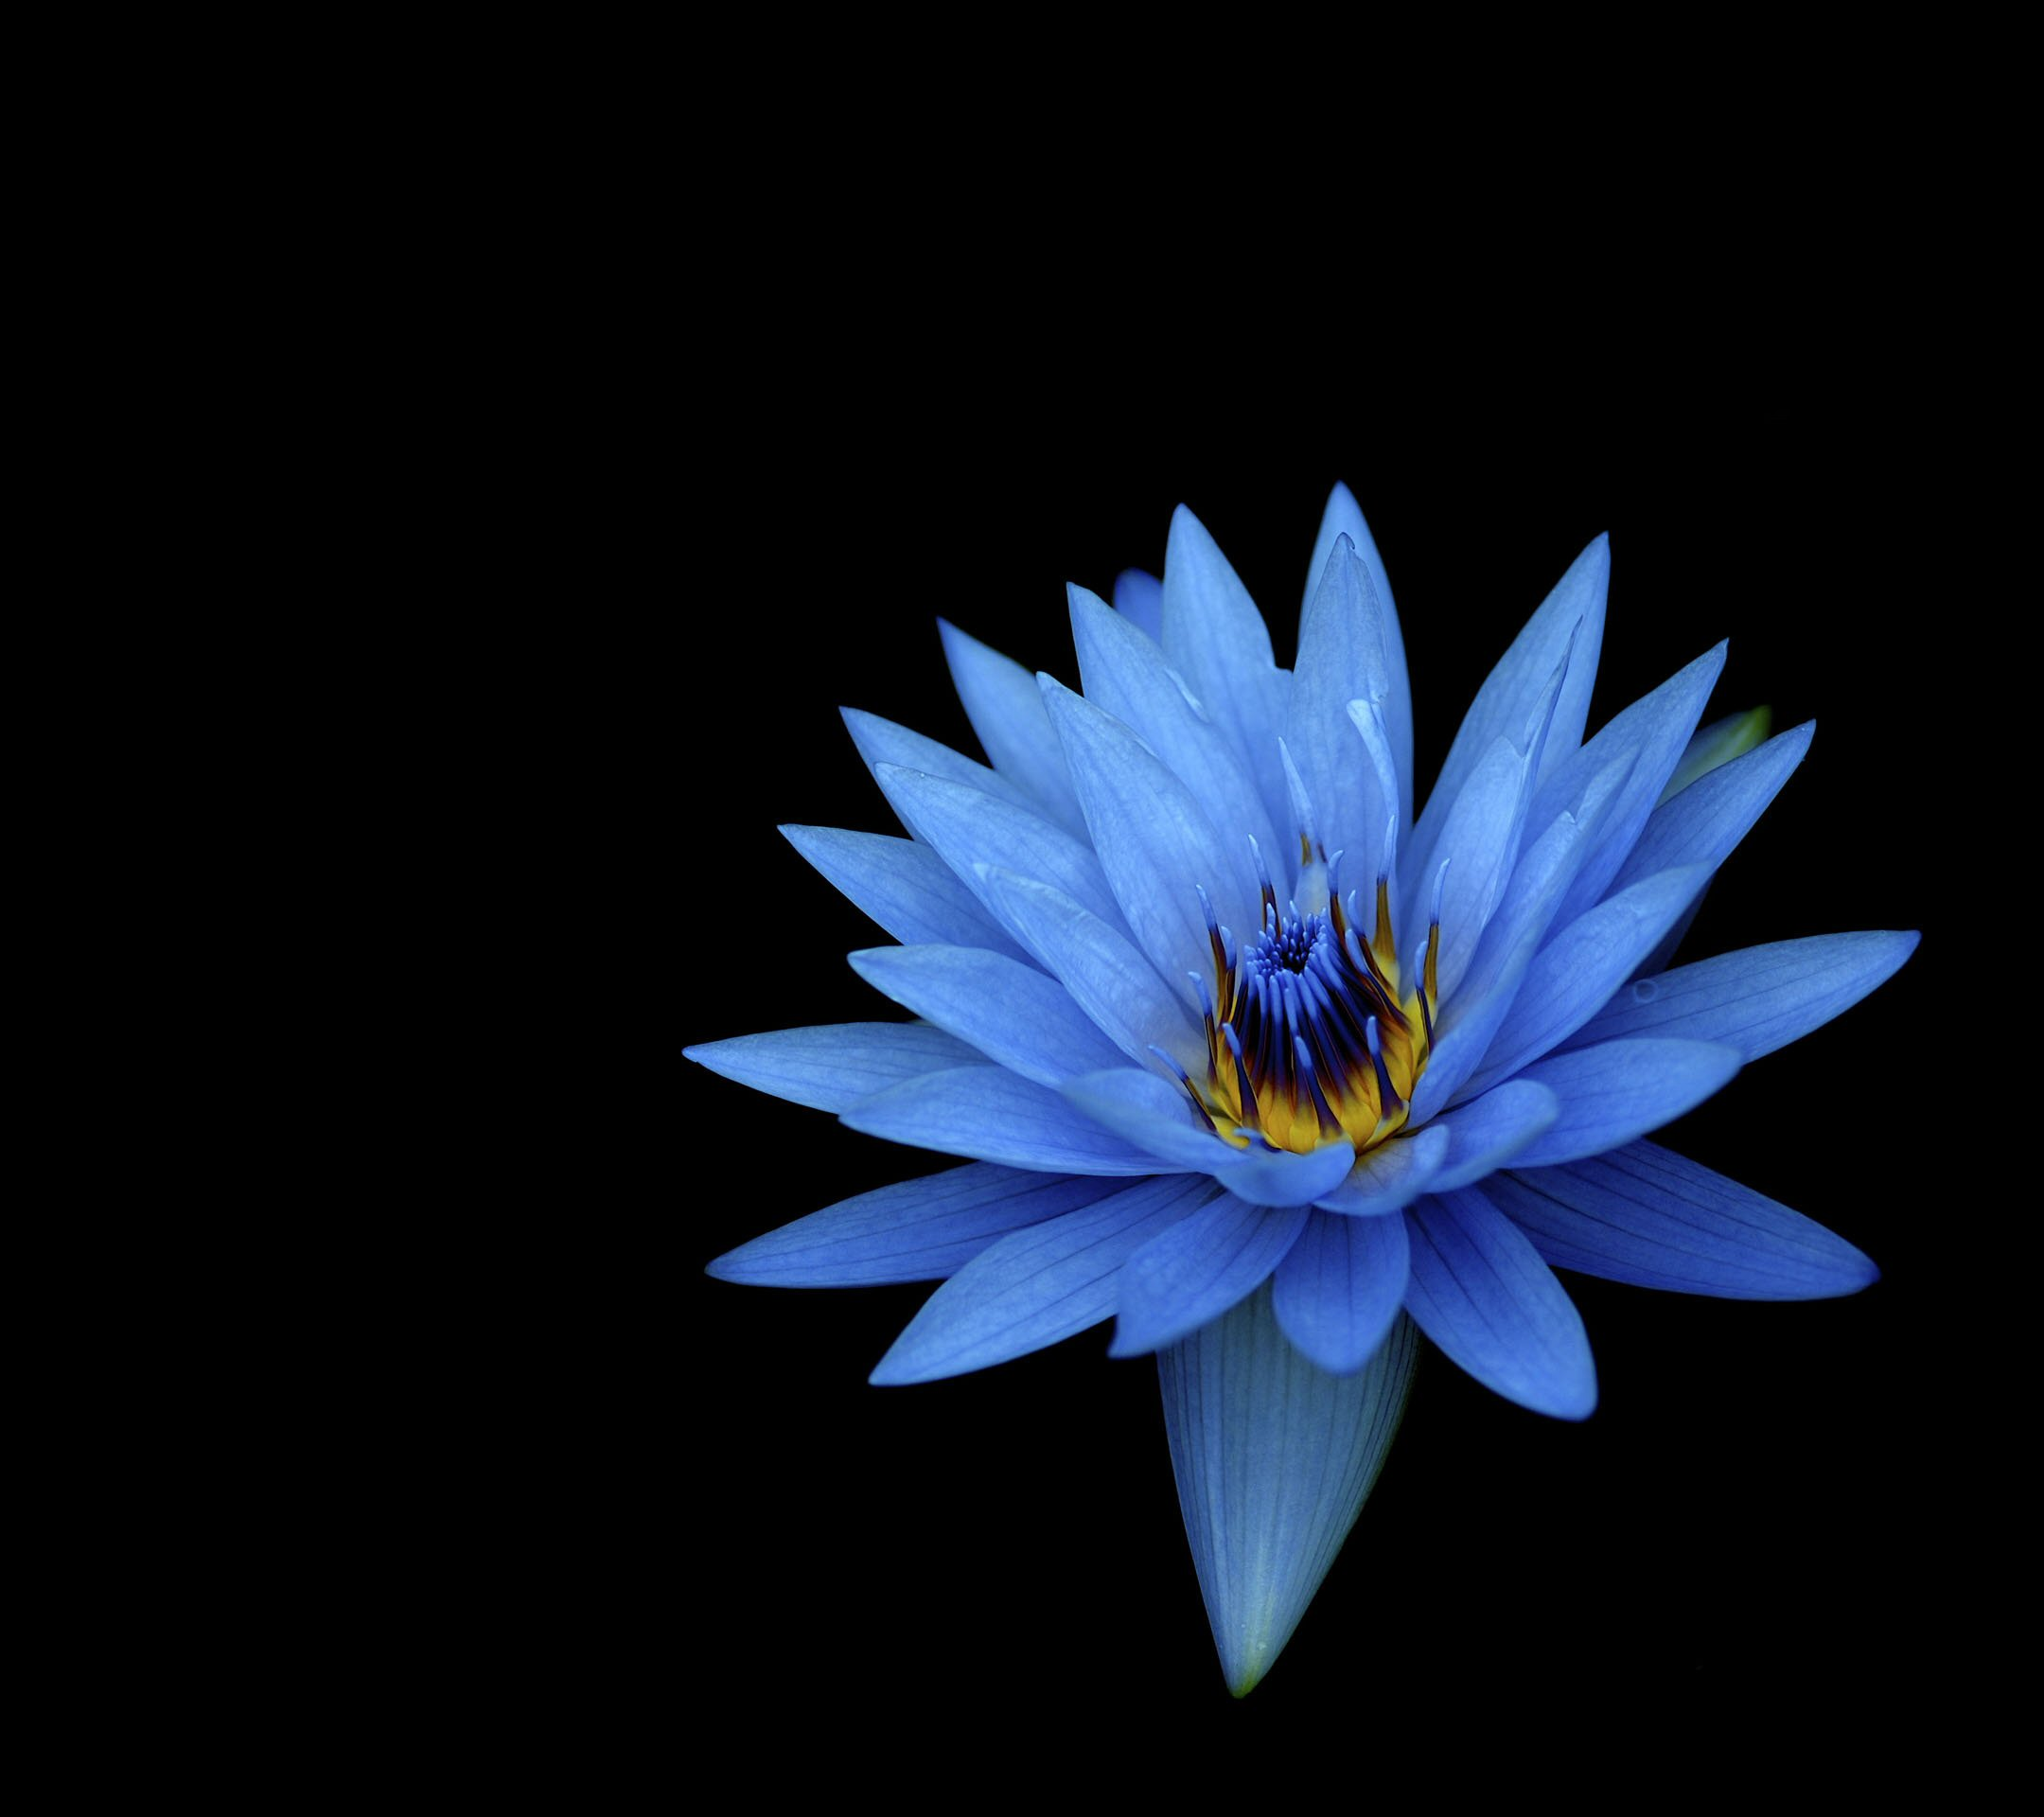 Sony Xperia Z1 Wallpapers blue flower hd1080pXperia Z1 Stock Wallpaper